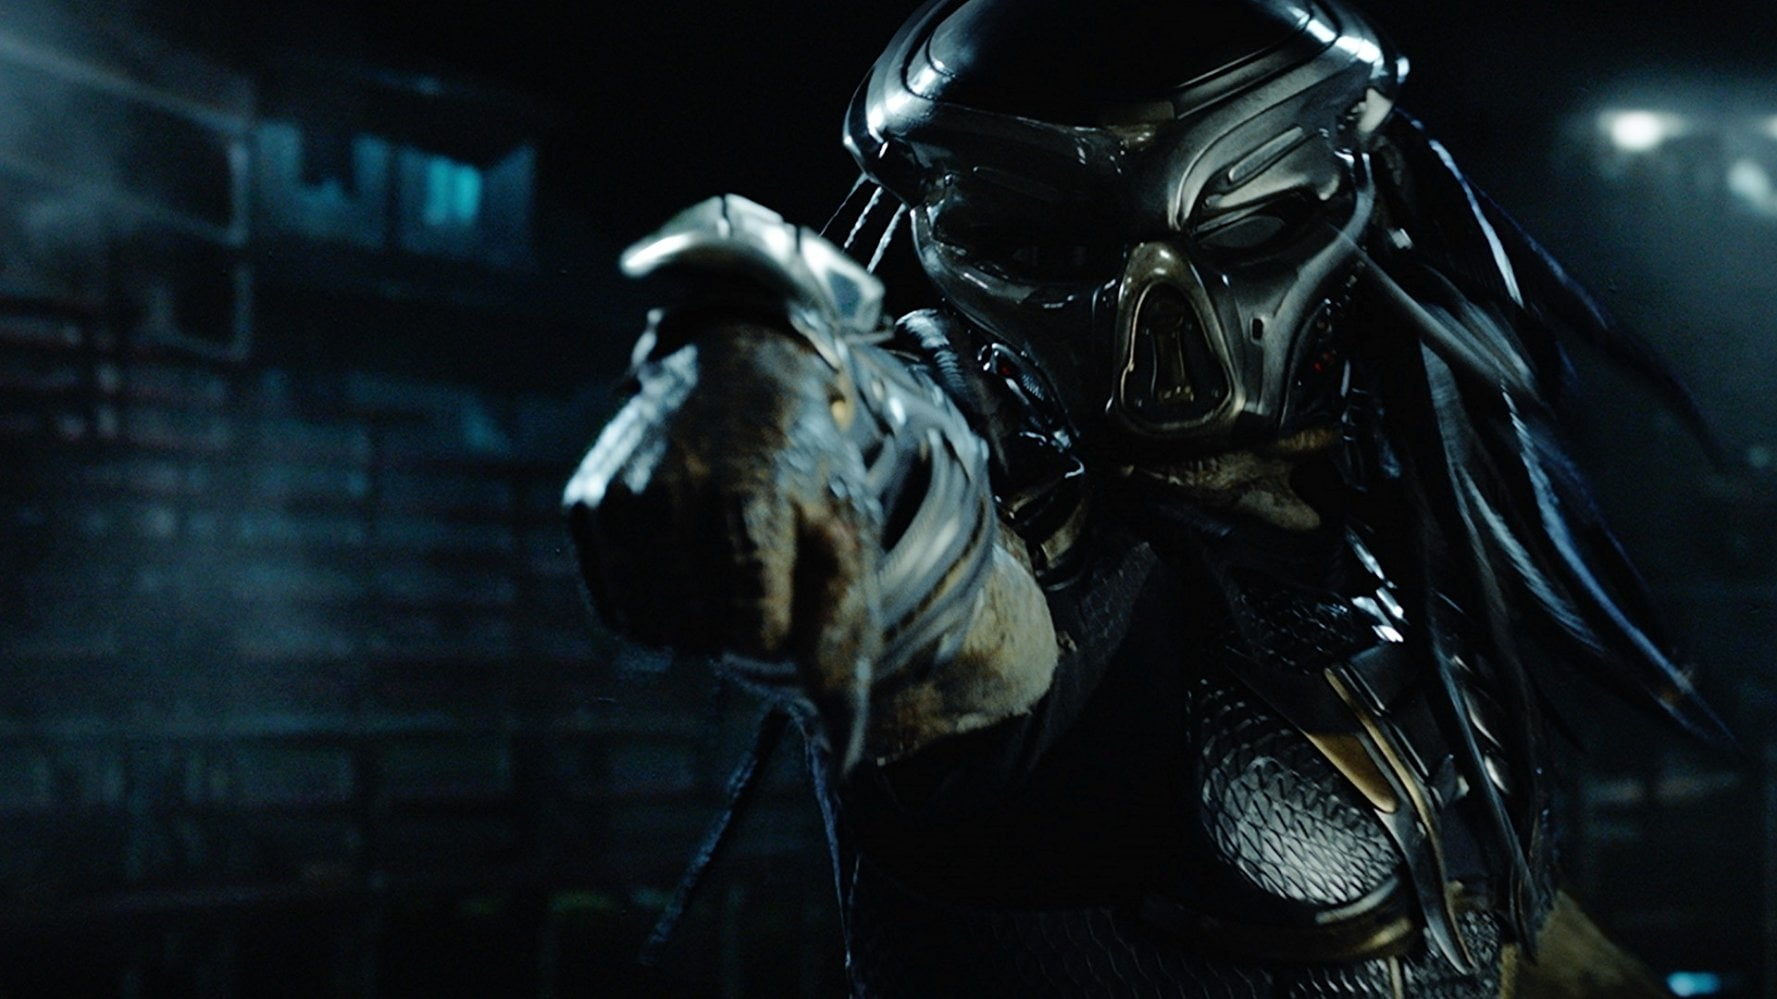 A New Official Trailer for 'The Predator' Has Arrived